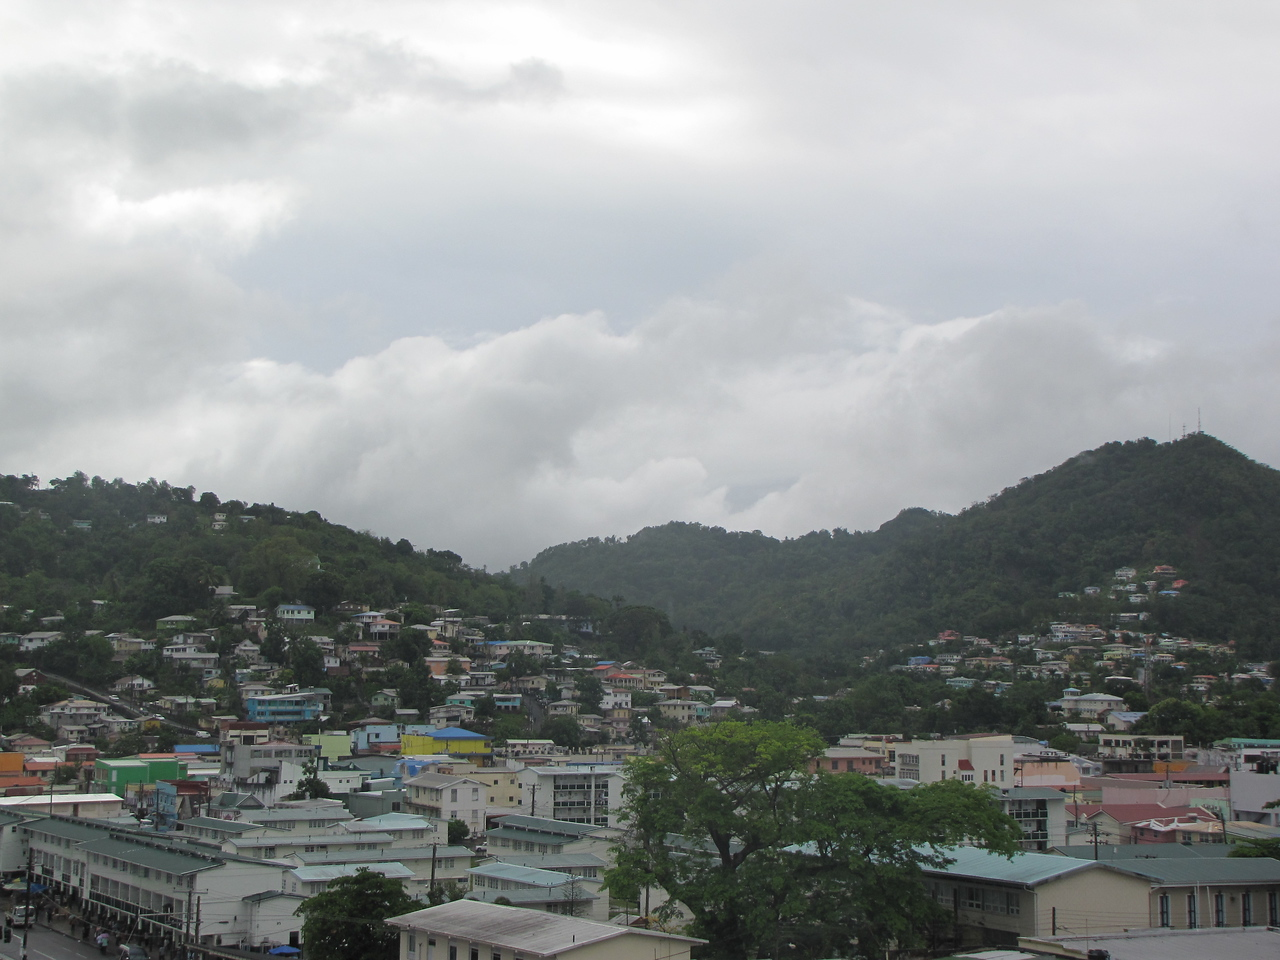 We arrive at Castries, St. Lucia on Thursday morning to the sight of more rain clouds.